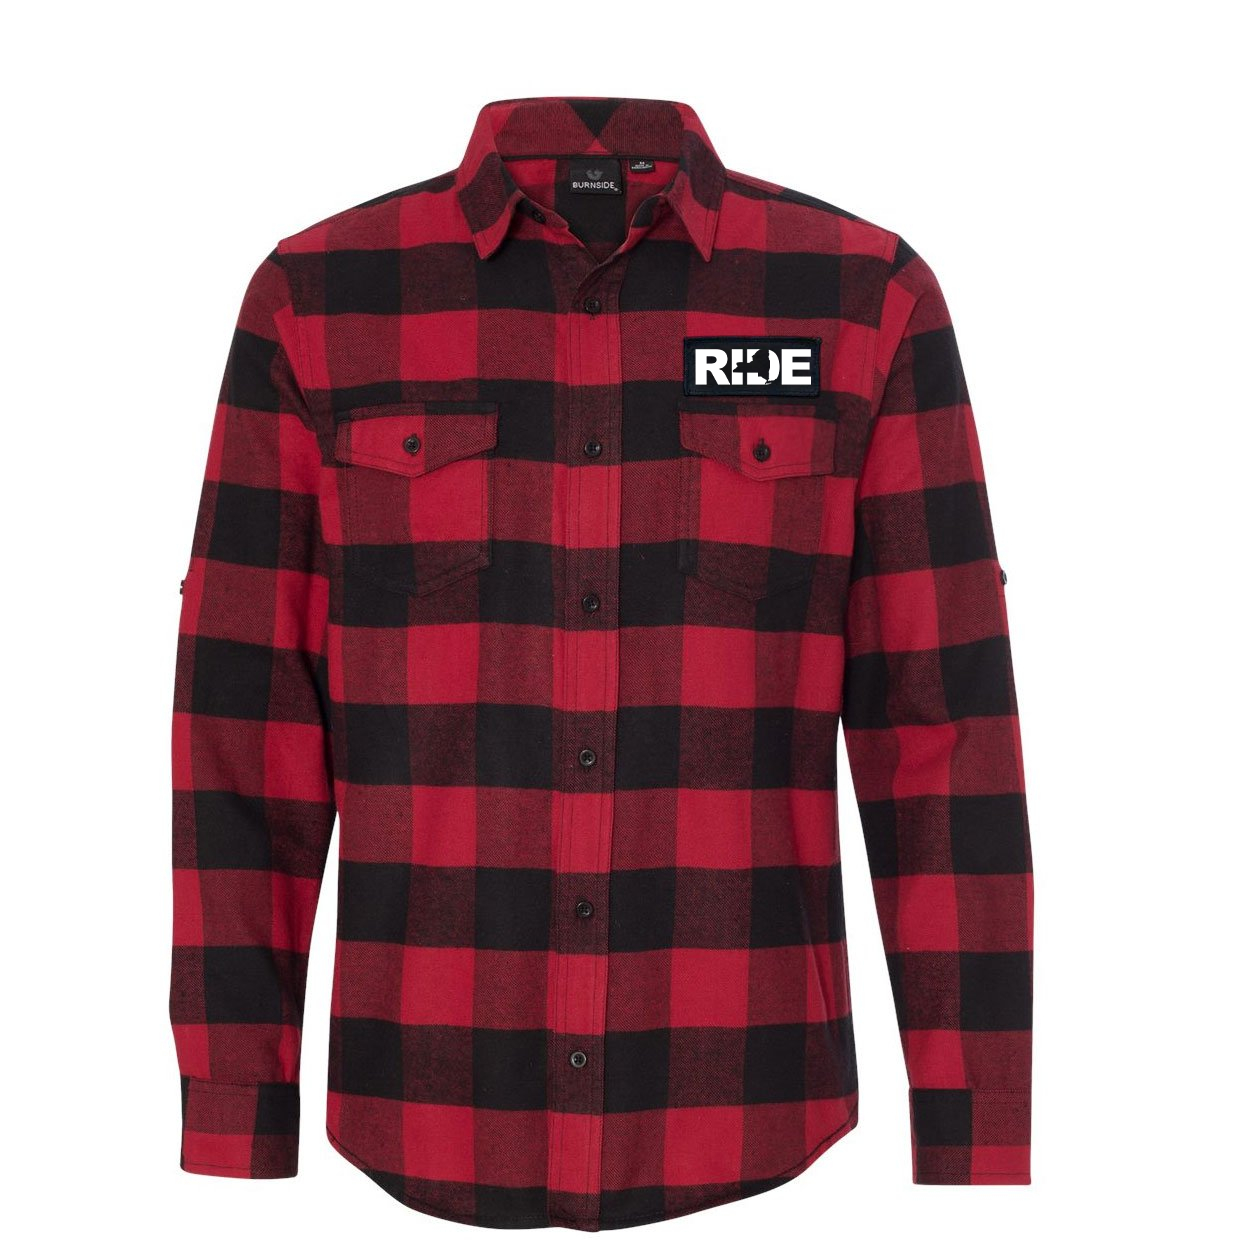 Ride New York Classic Unisex Long Sleeve Woven Patch Flannel Shirt Red/Black Buffalo (White Logo)